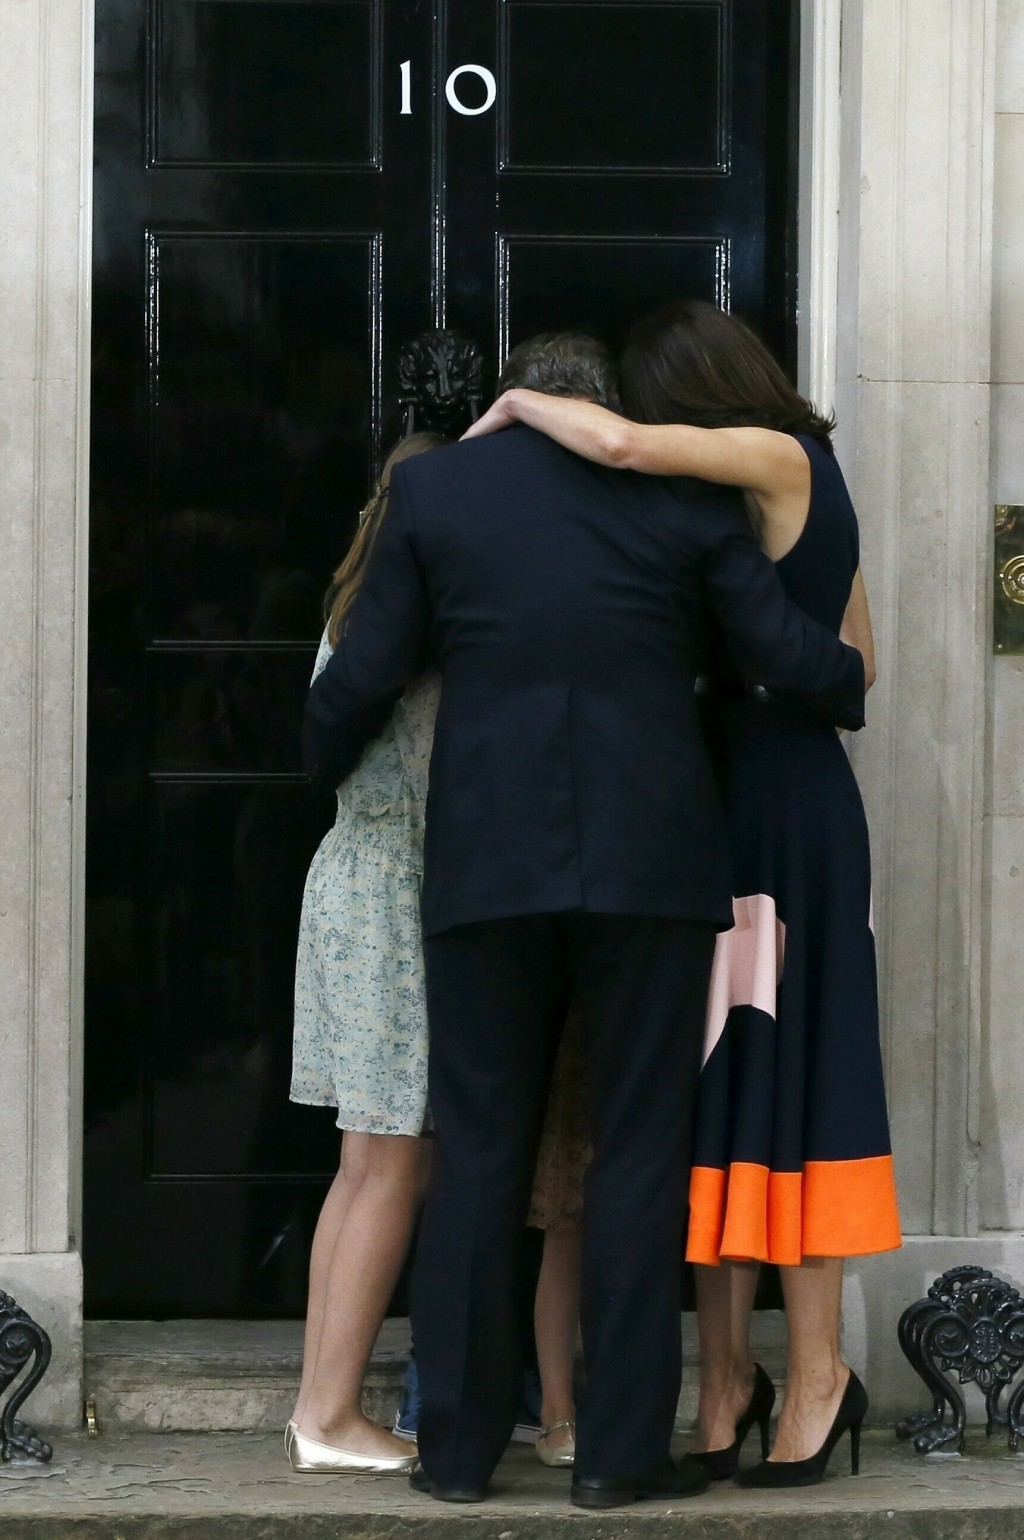 FILE - In this Wednesday, July 13, 2016 file photo Britain's Prime Minister David Cameron, his wife Samantha and their children Nancy, Elwen and Flore